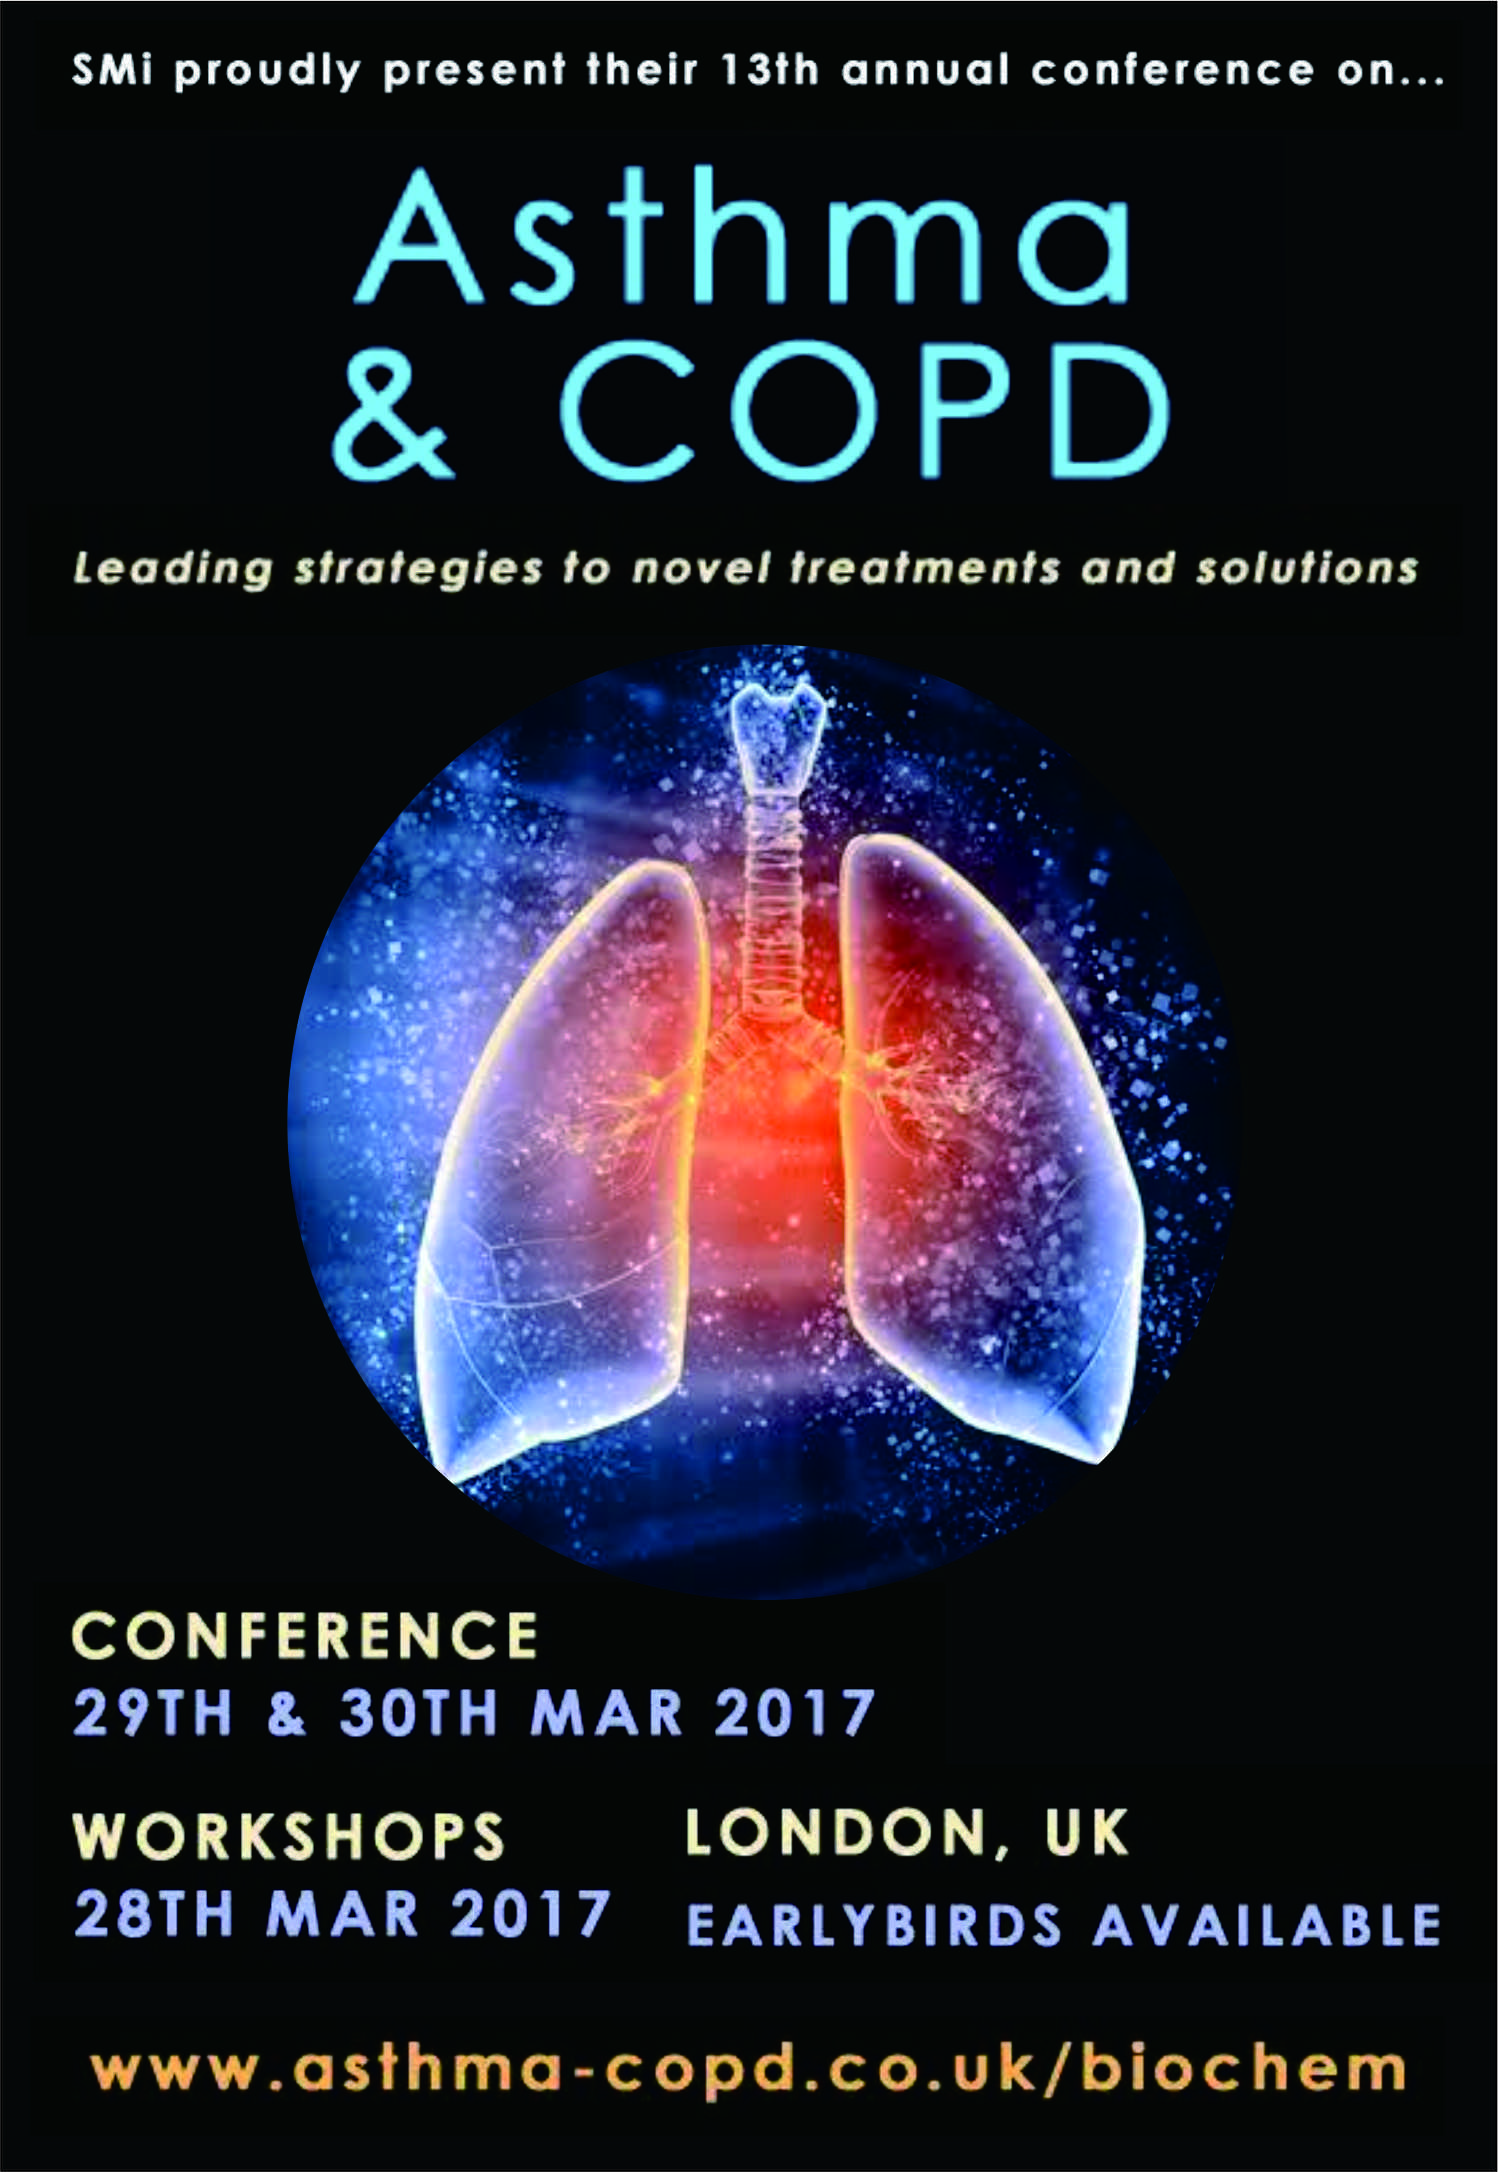 Asthma & COPD 2017